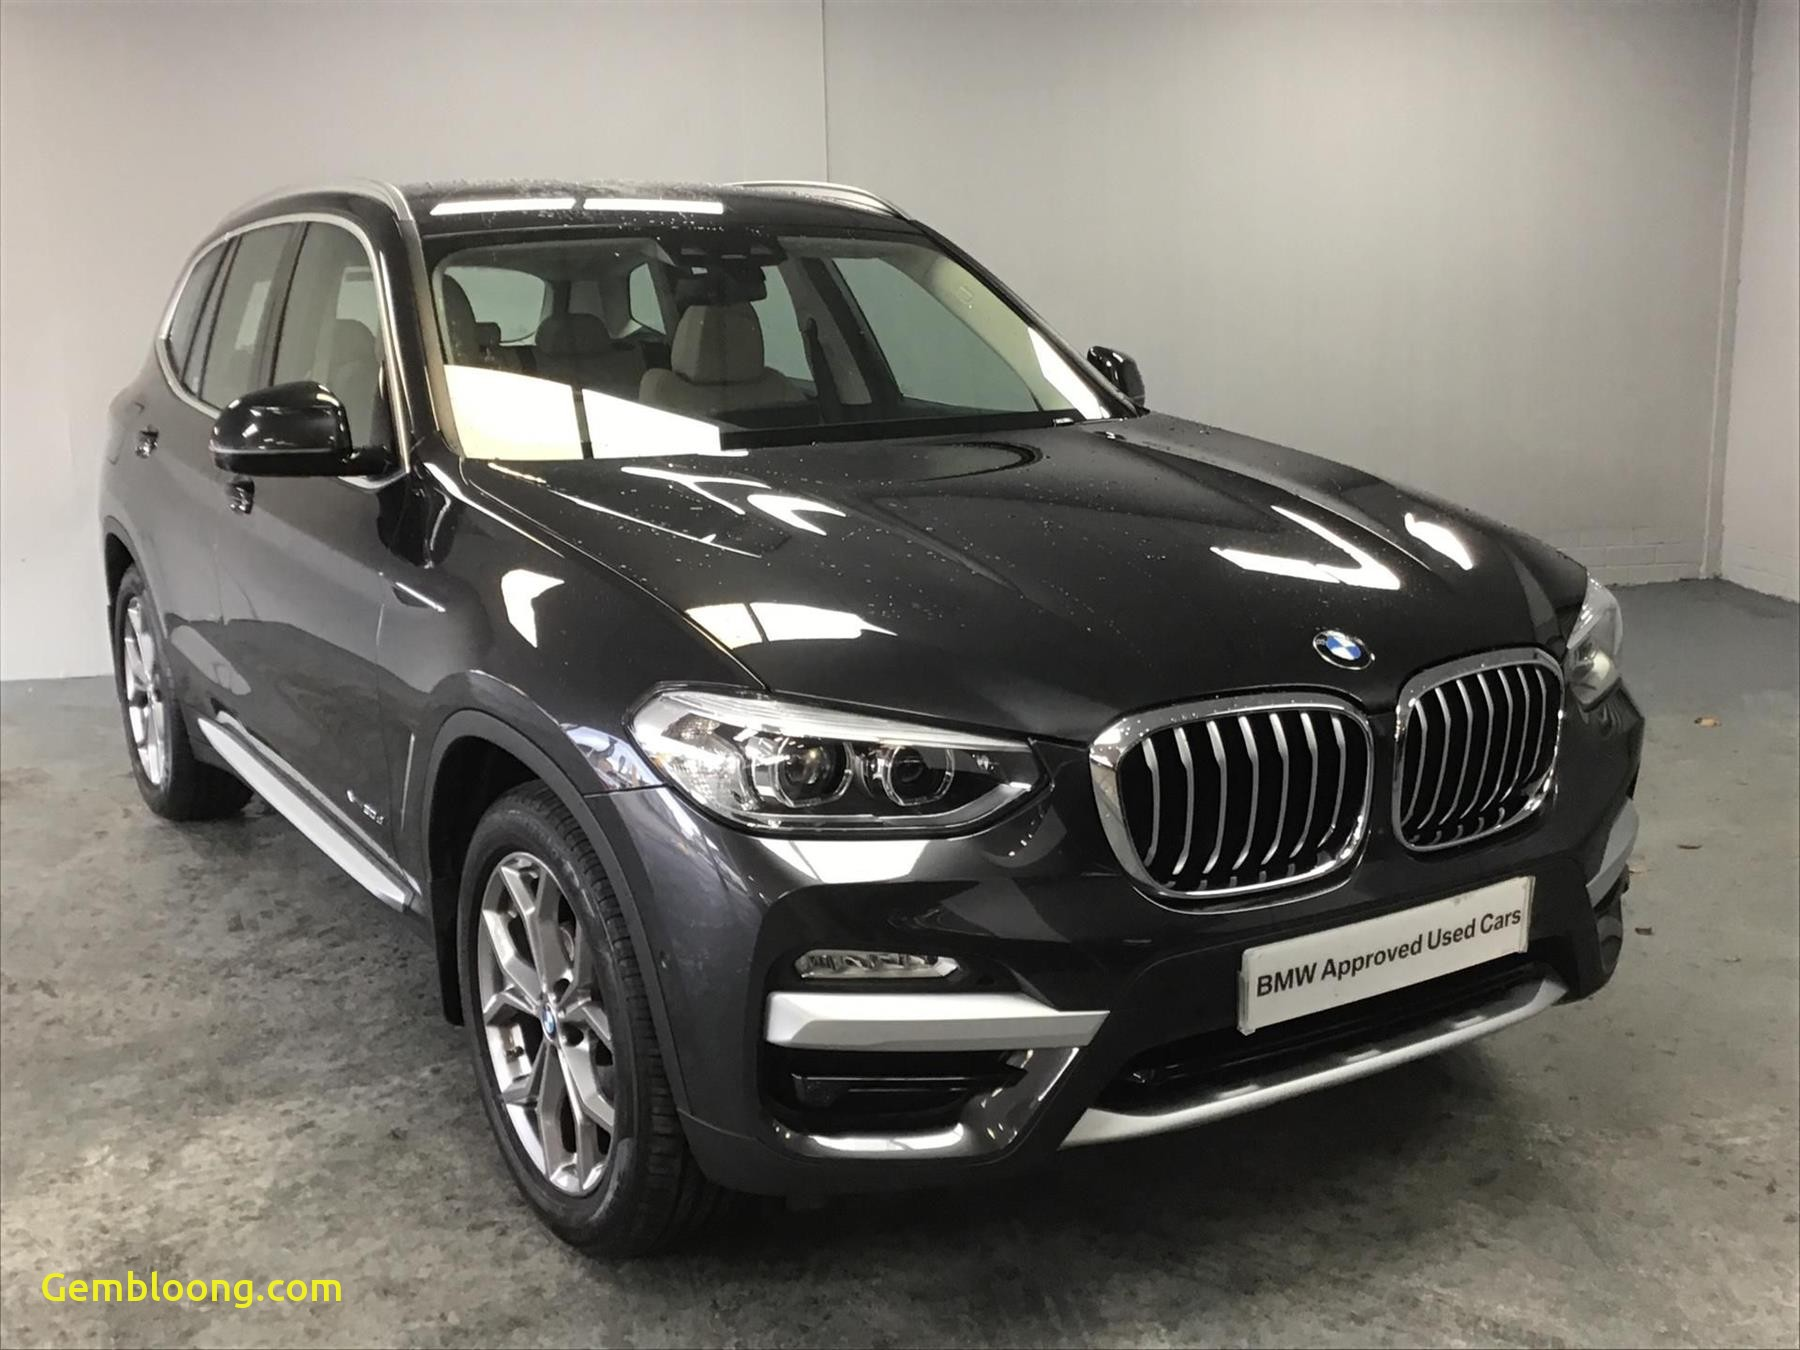 Used Bmw X3 Beautiful Used Bmw X3 Cars for Sale with Pistonheads